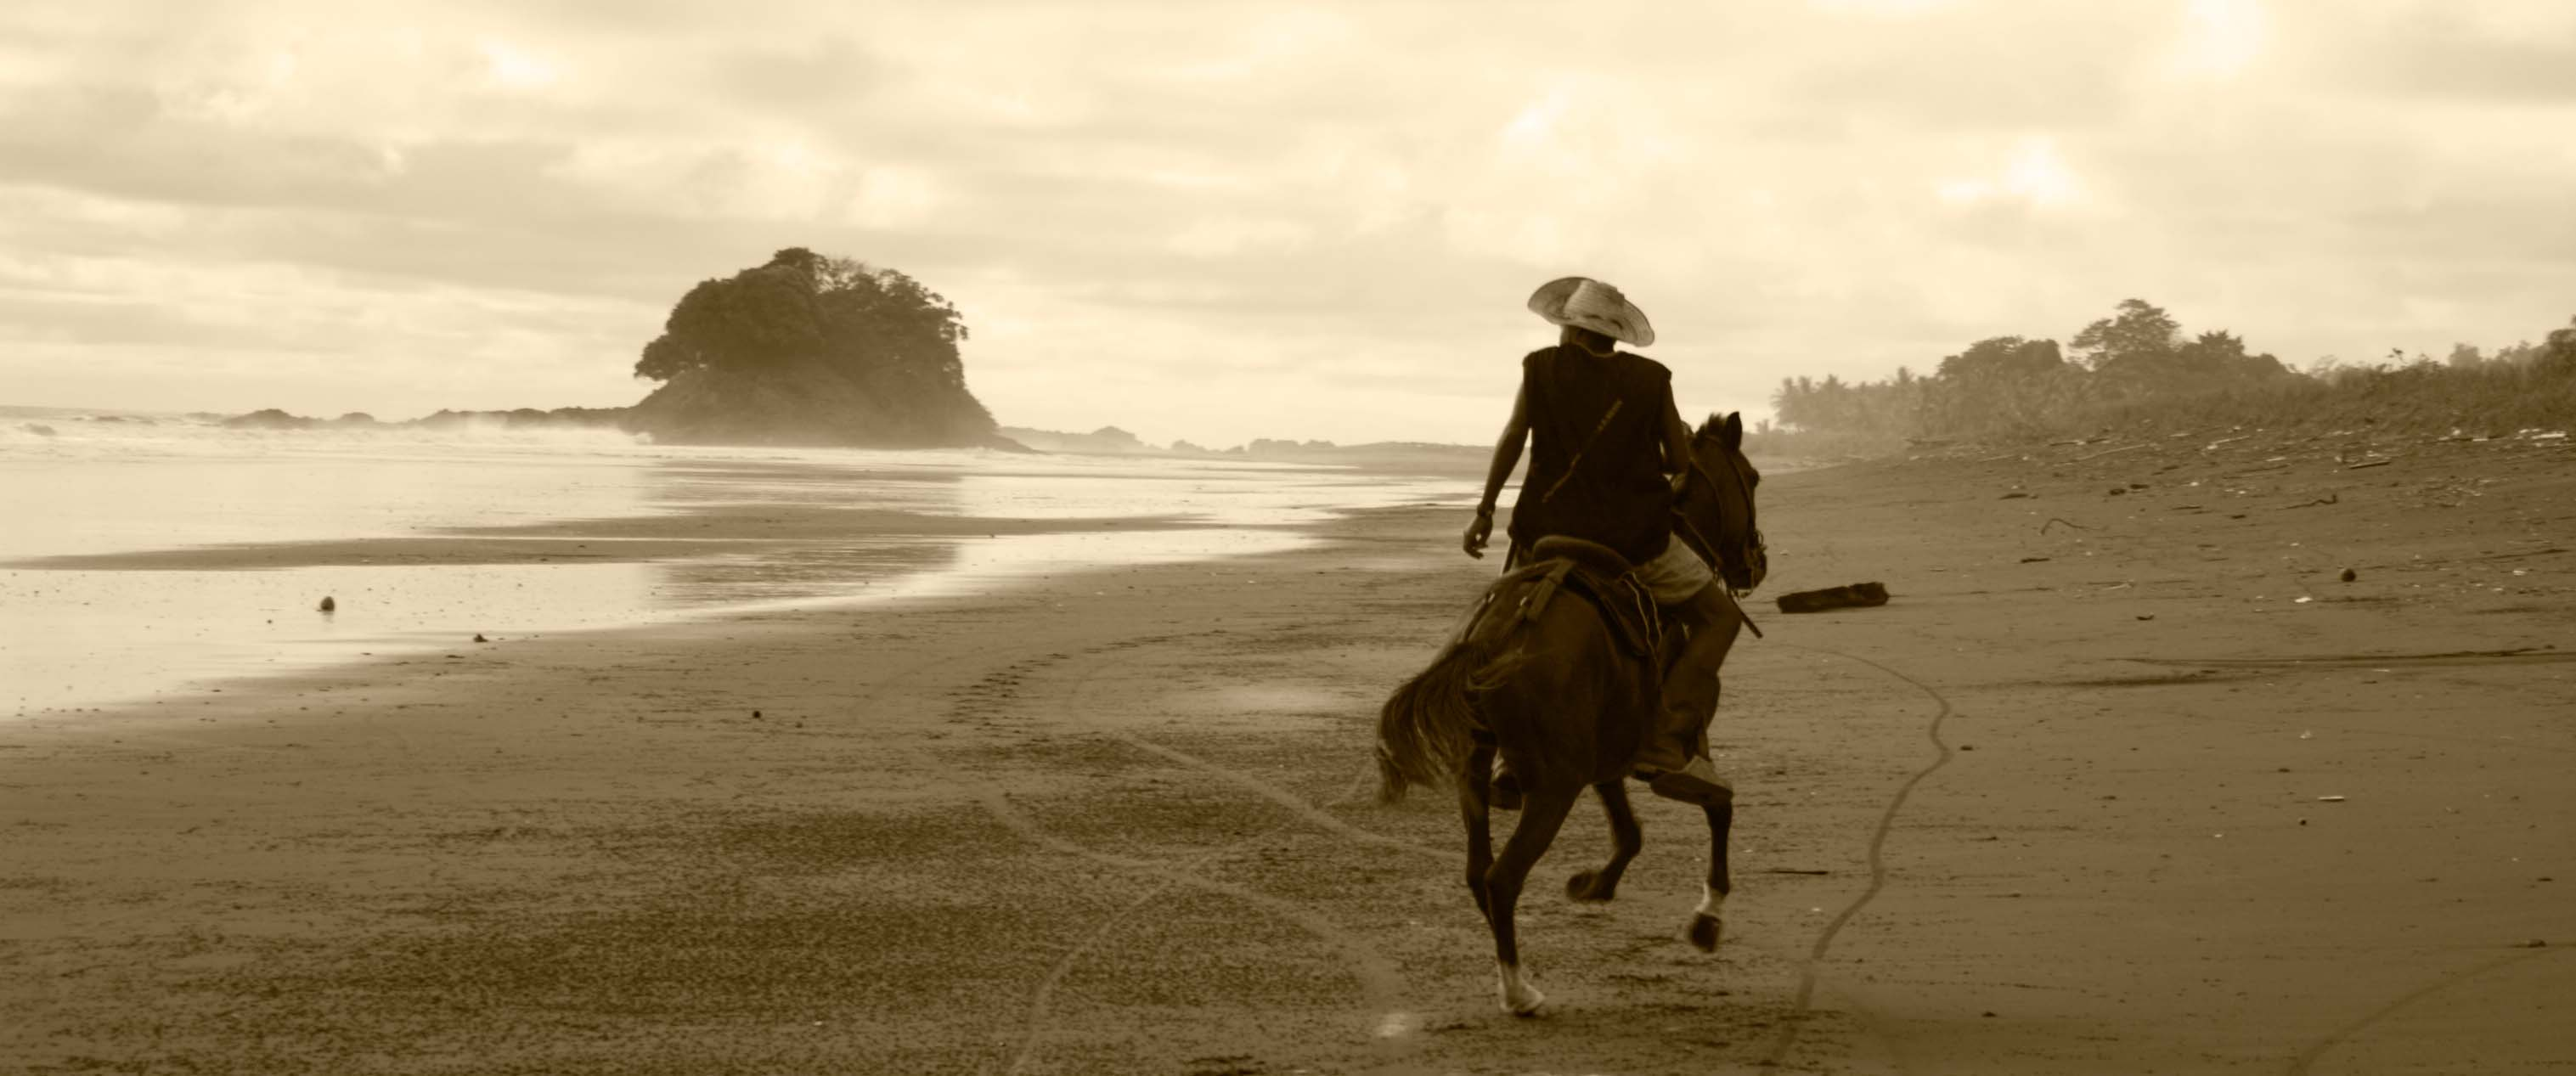 Horse-riding on the beach (Colombian Pacific Coast)